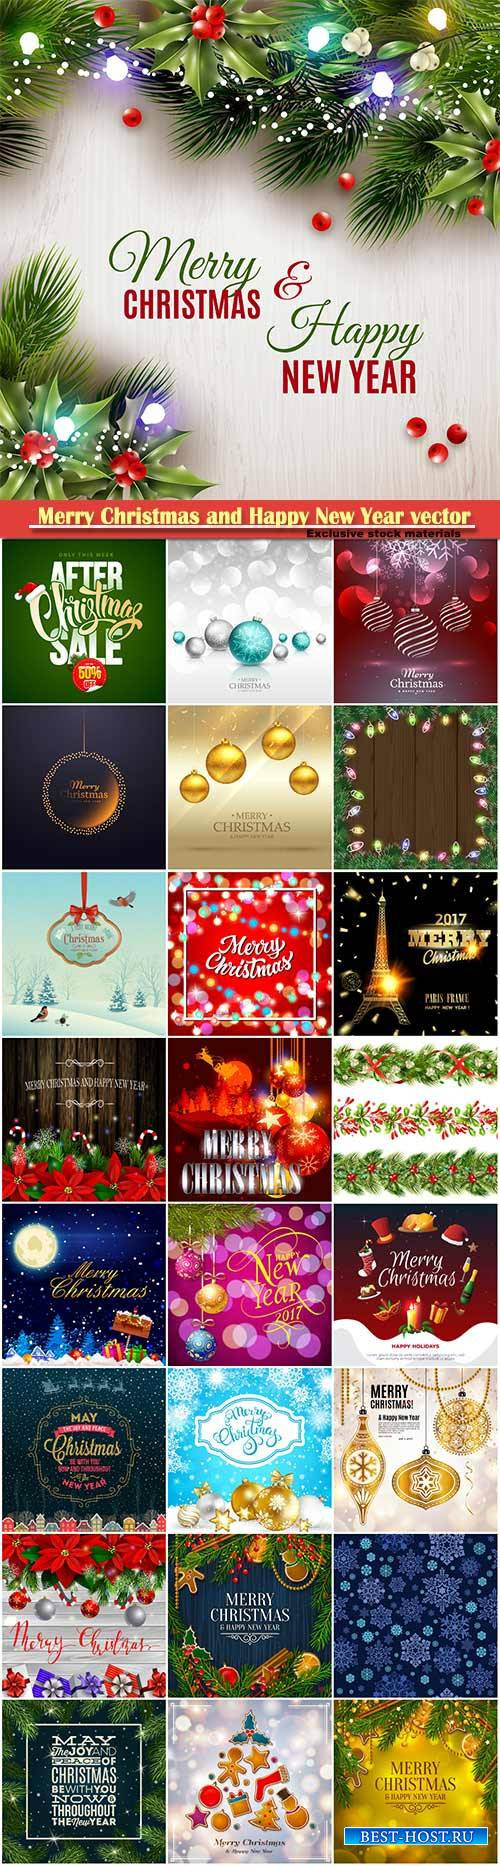 Merry Christmas and Happy New Year vector design # 30